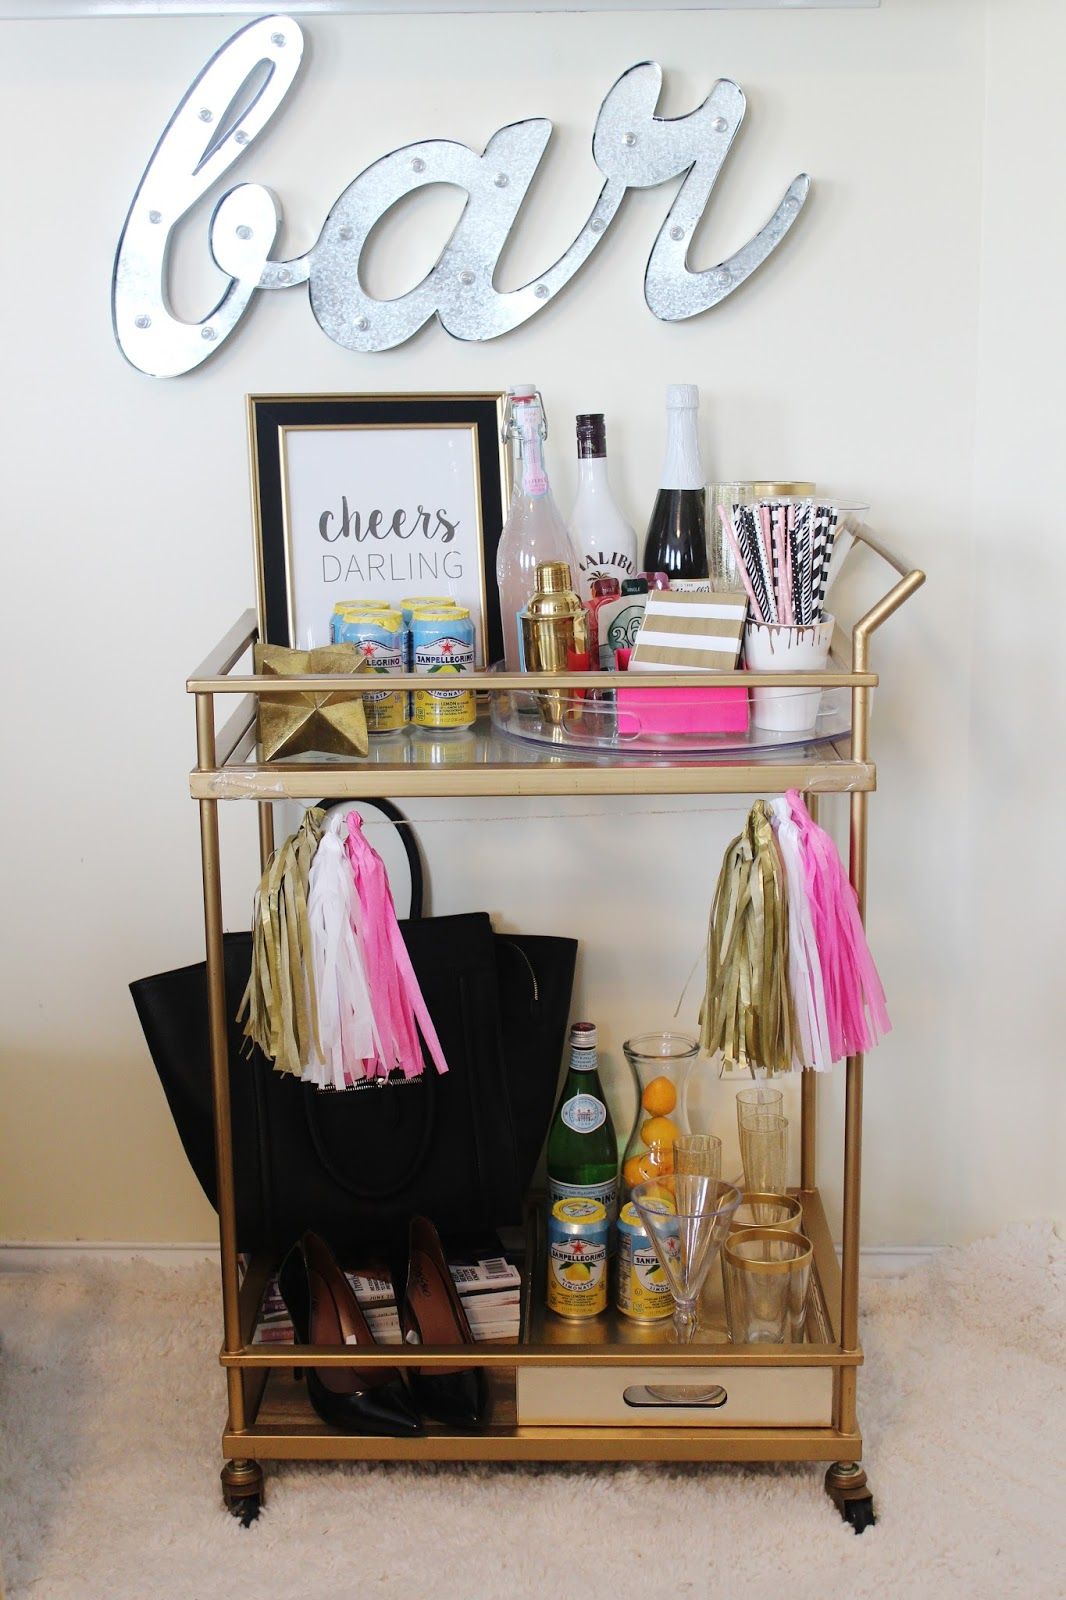 they have great bar cart essentials and decor items to get your bar cart ready - How To Style A Bar Cart